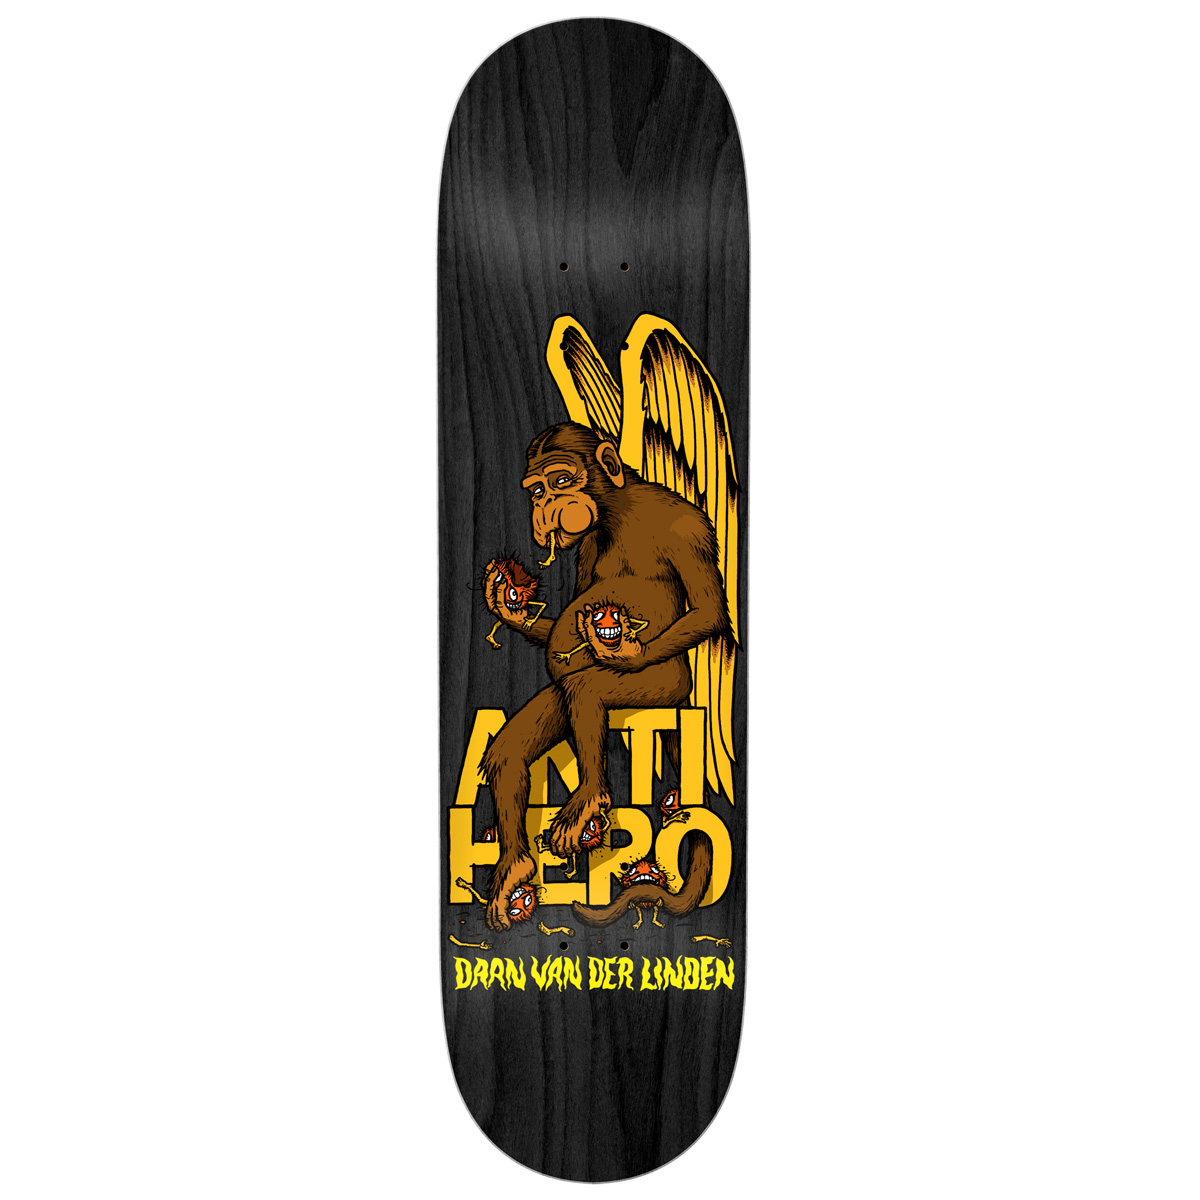 AH DECK MONKEY BUSINS DAAN 8.5 - Click to enlarge